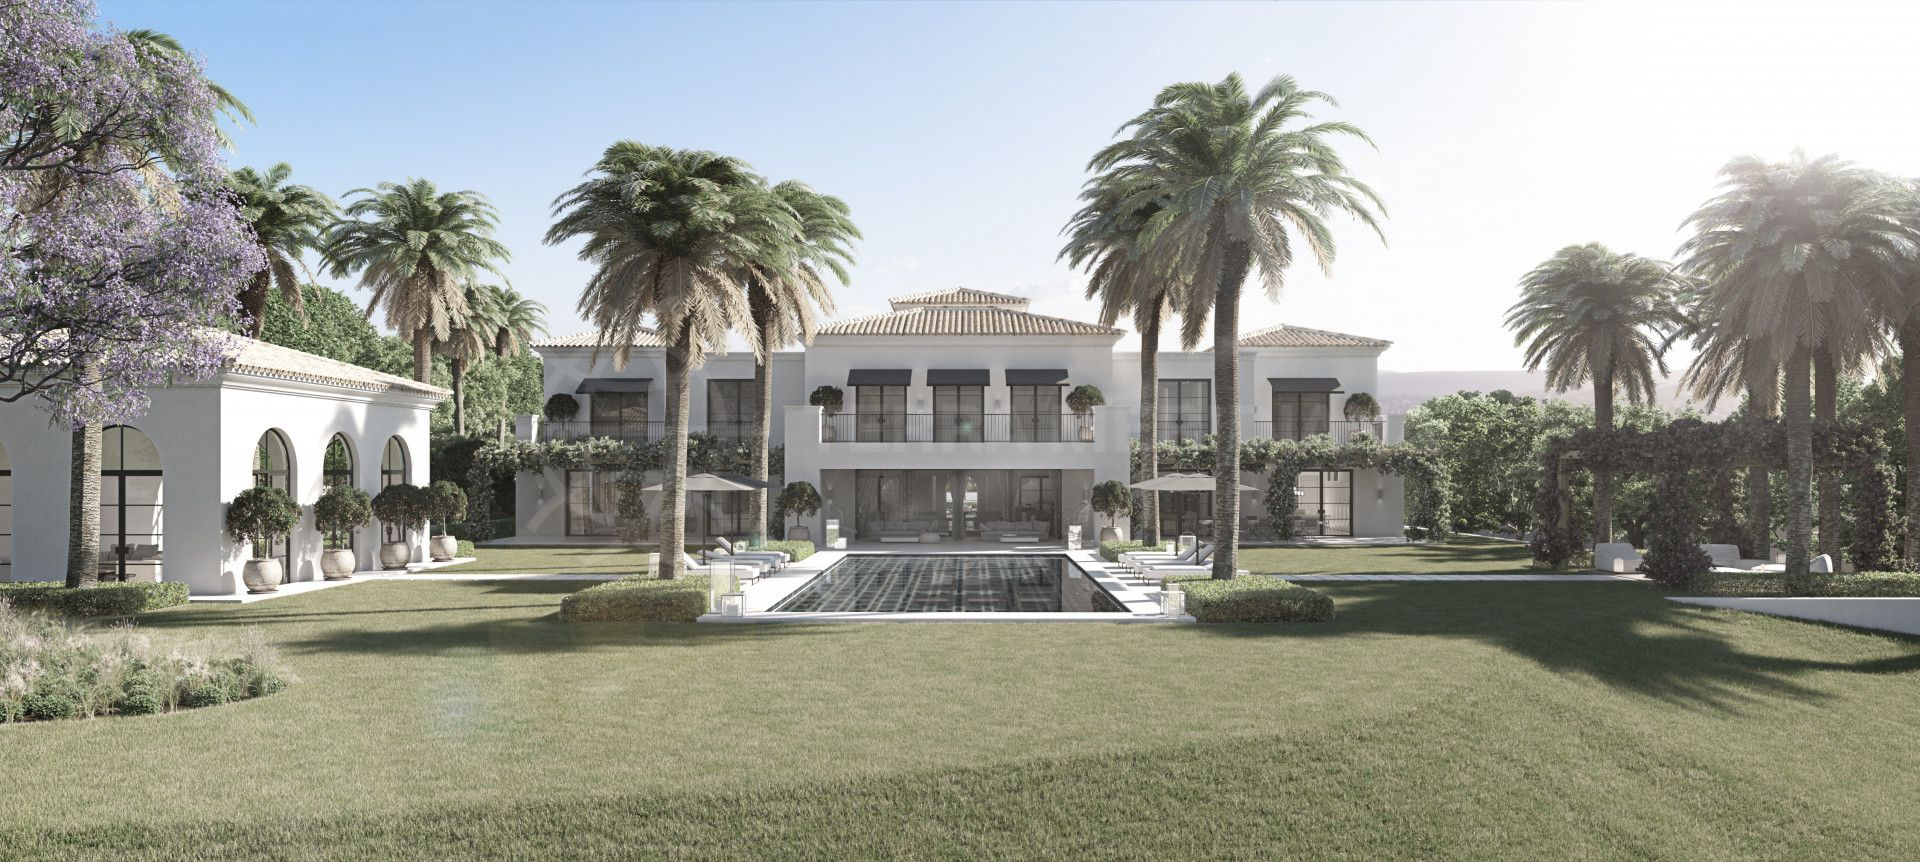 High-end Costa del Sol property is booming